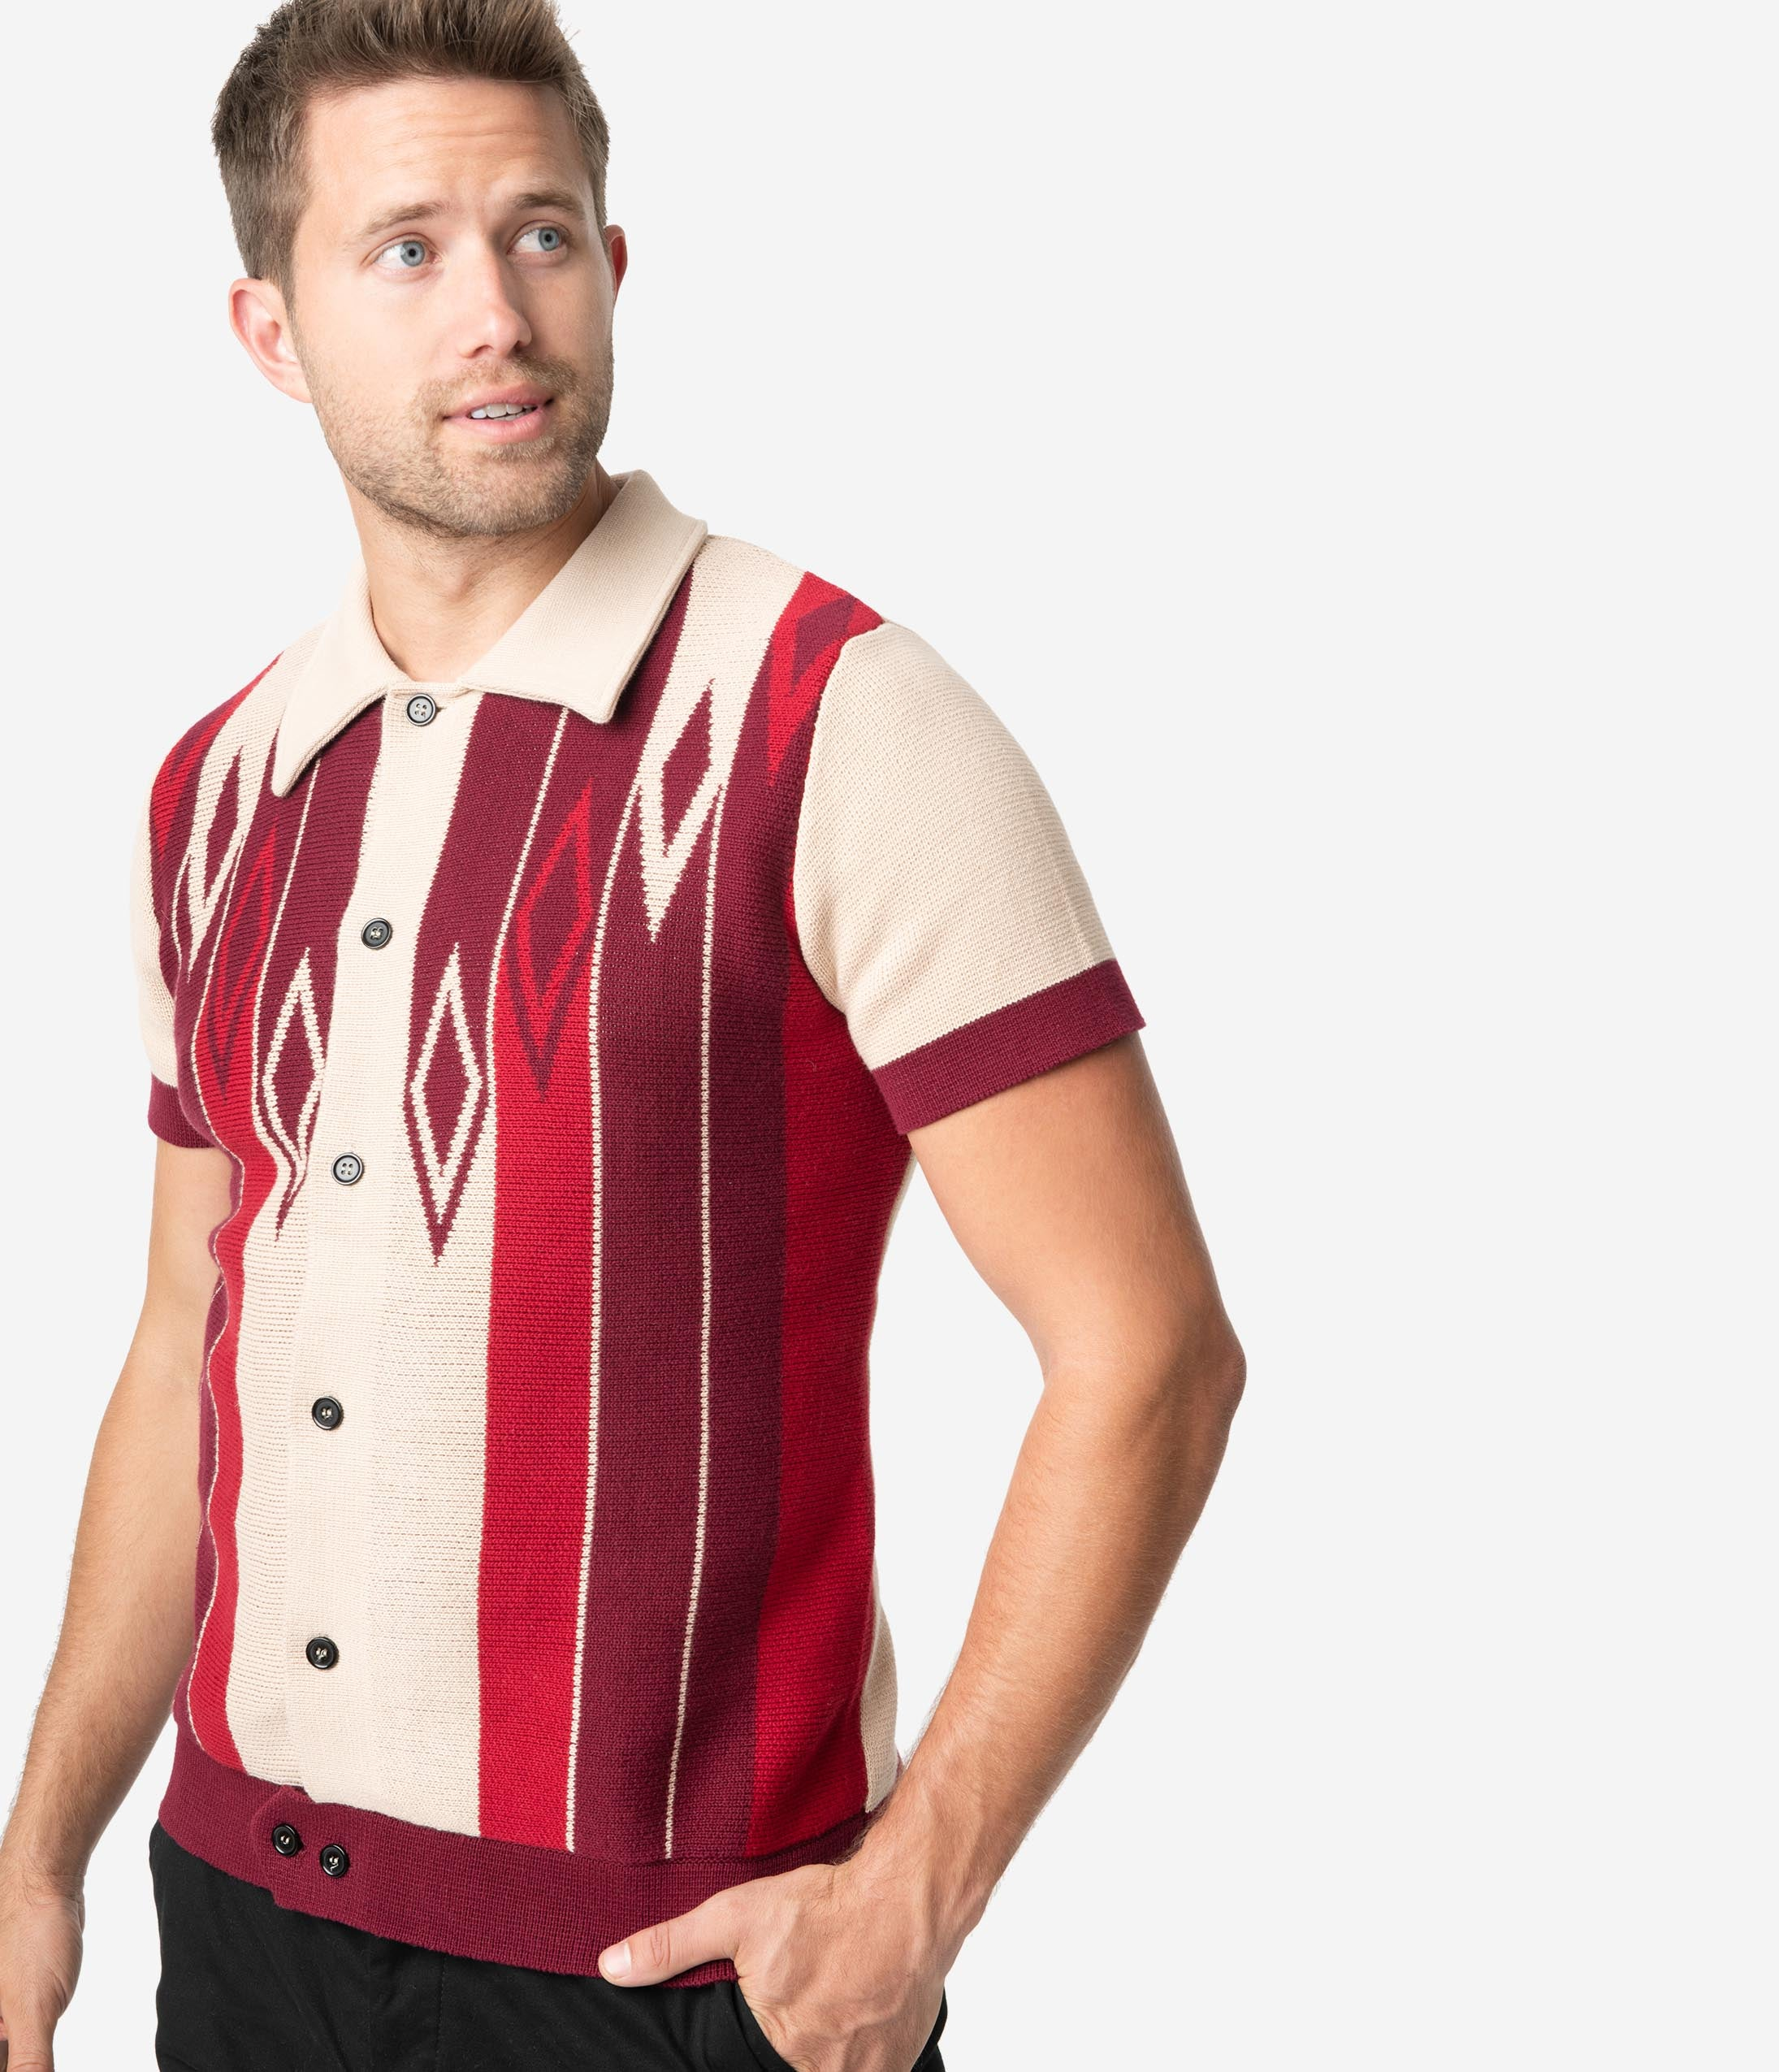 Mens Vintage Shirts – Casual, Dress, T-shirts, Polos Collectif 1960S Tan  Burgundy Luca Diamond Knit Short Sleeve Mens Cardigan $52.00 AT vintagedancer.com